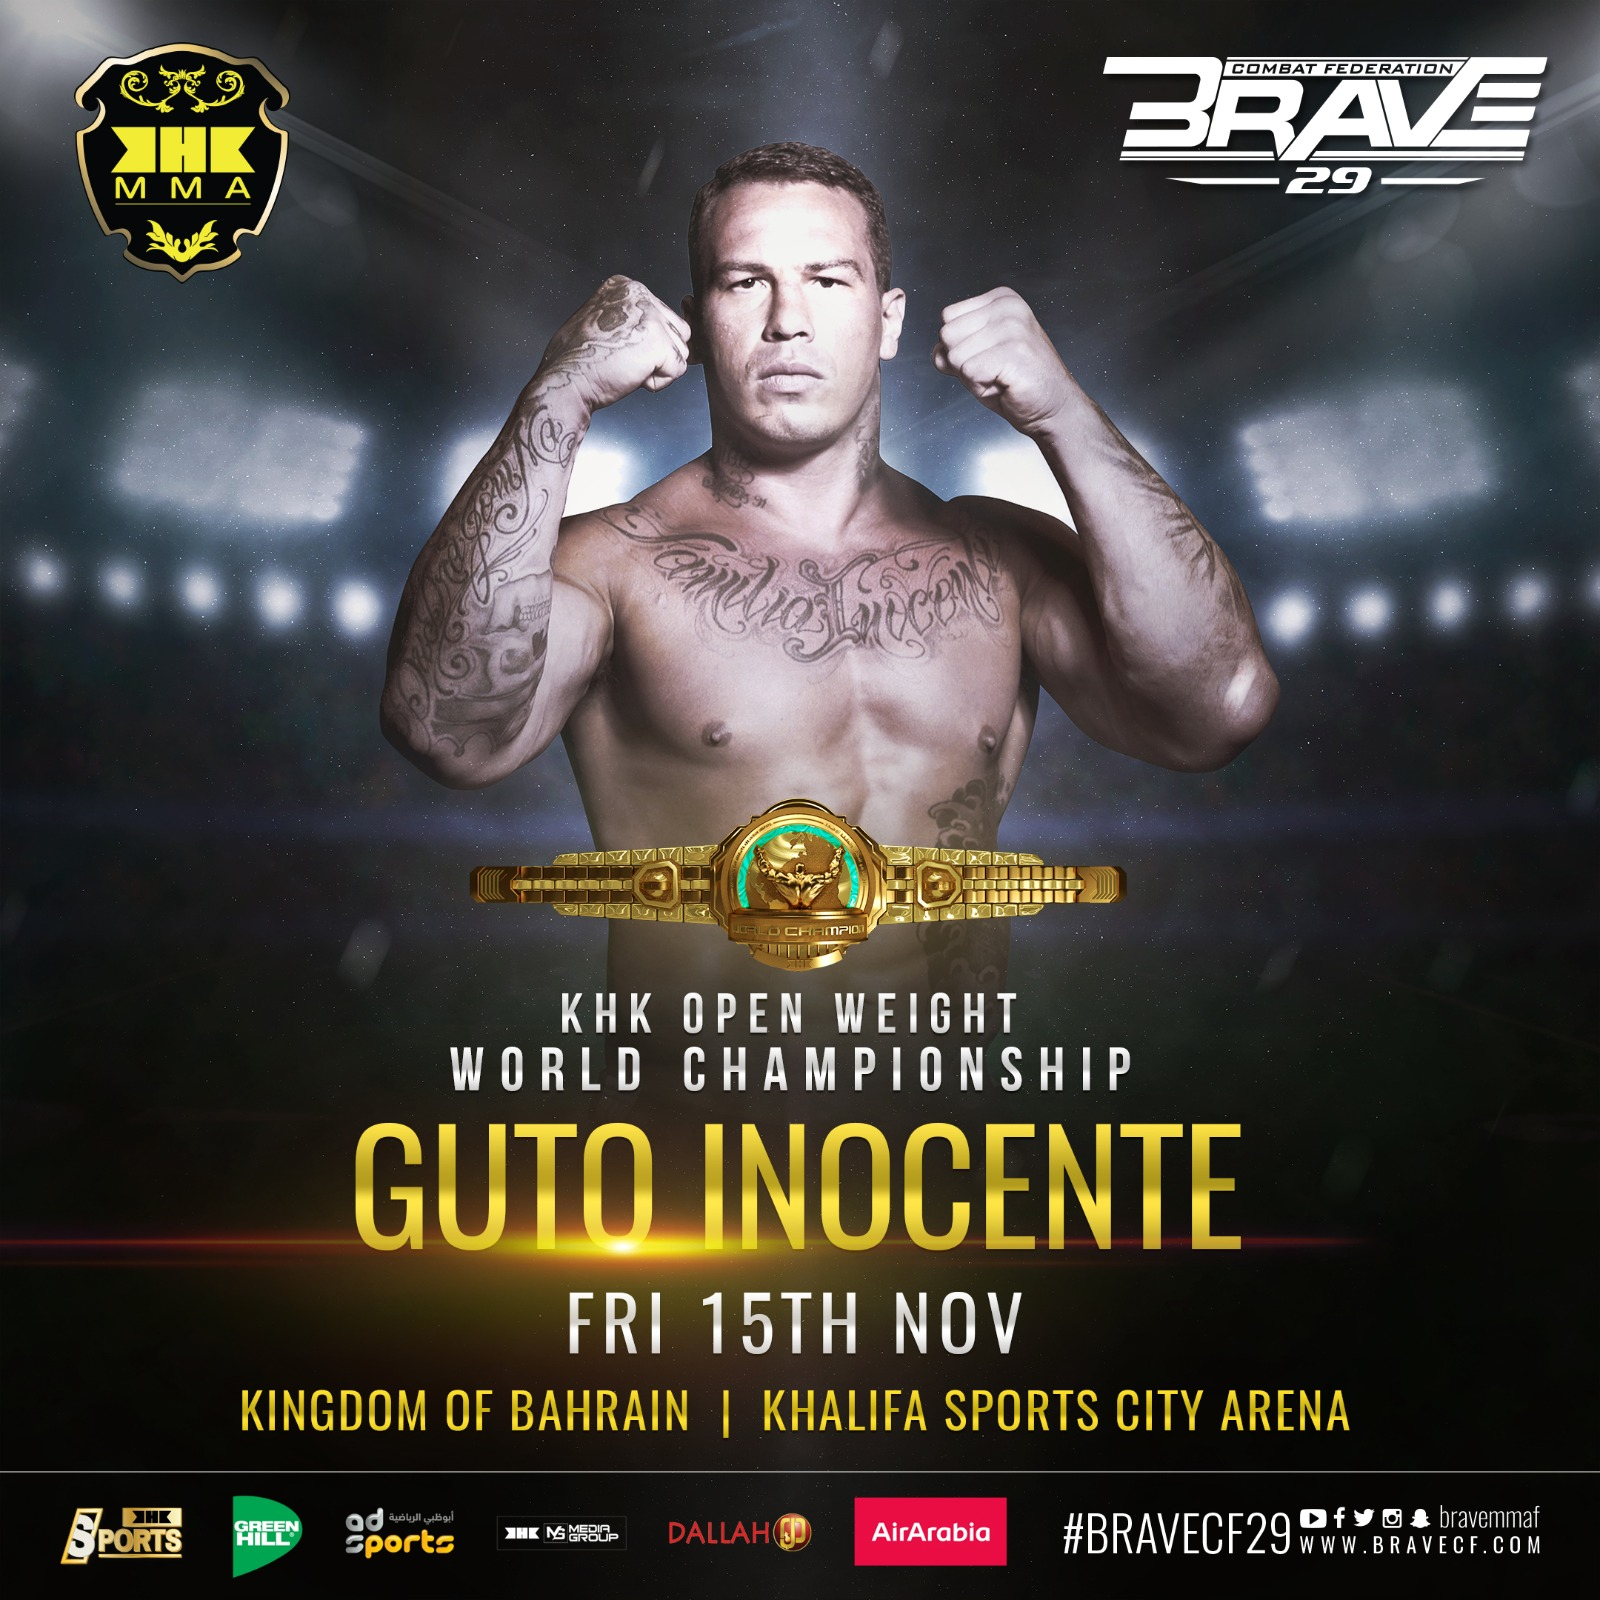 KHK's Guto Inocente comes full circle after cheating death during his gang days - KHK MMA